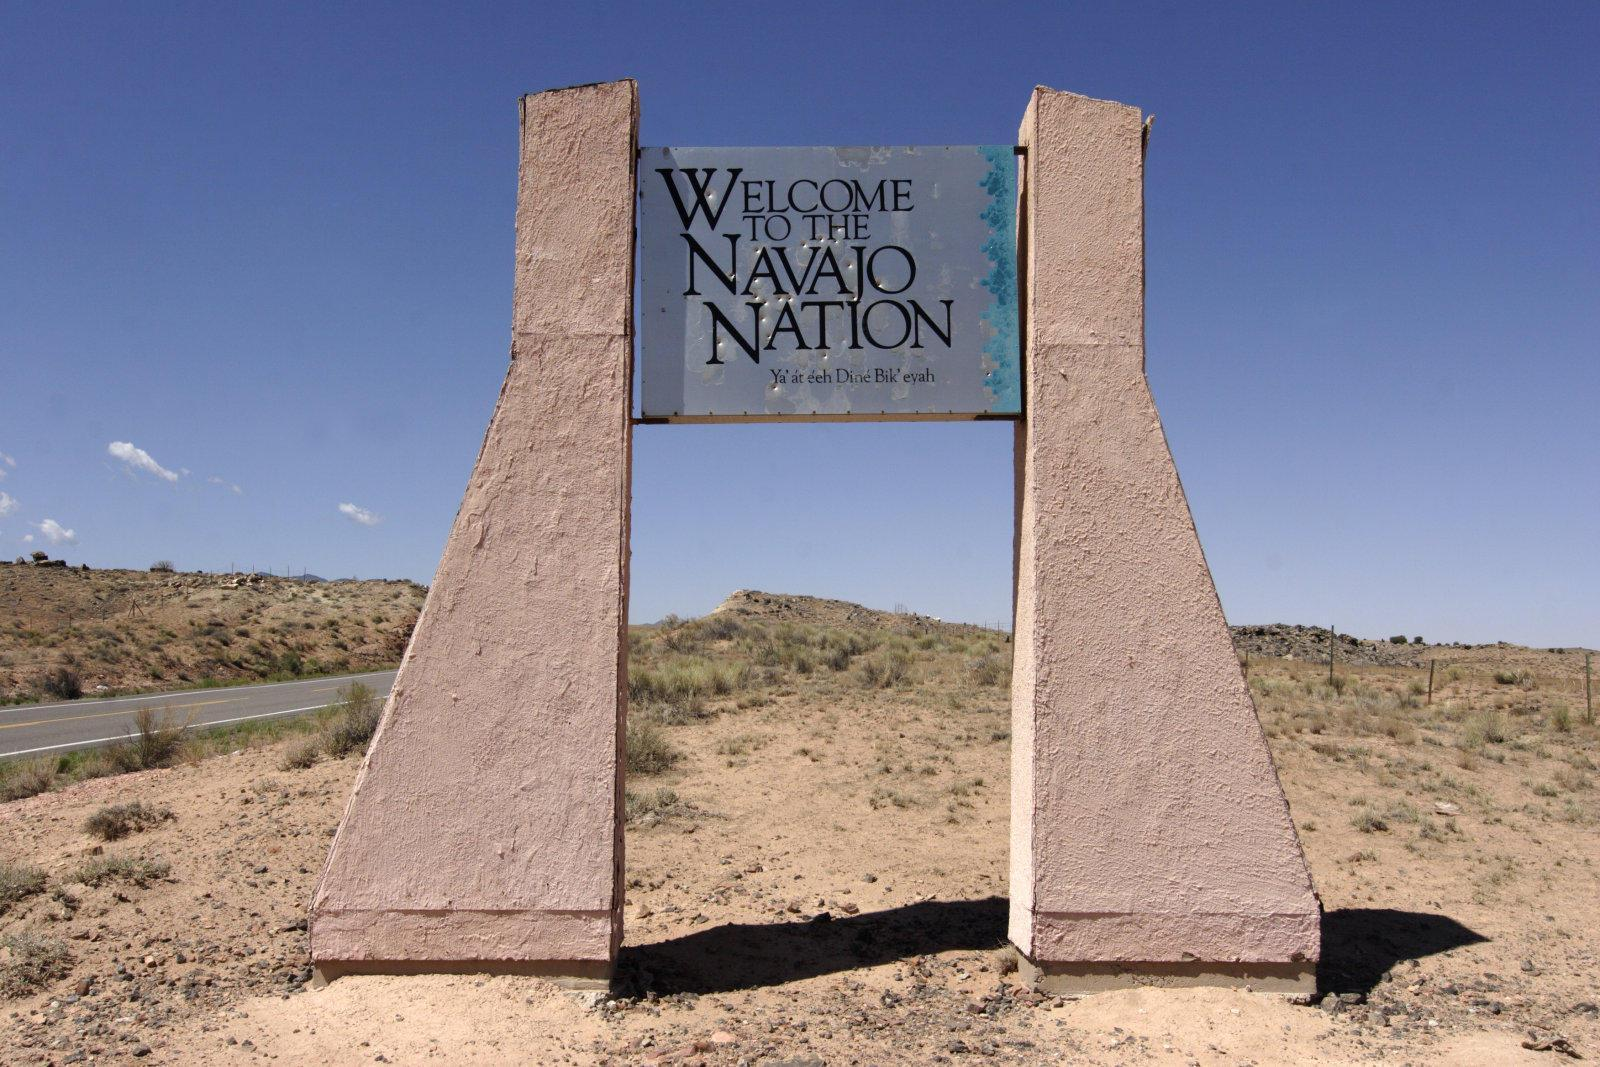 Welcome to Navajo Nation sign